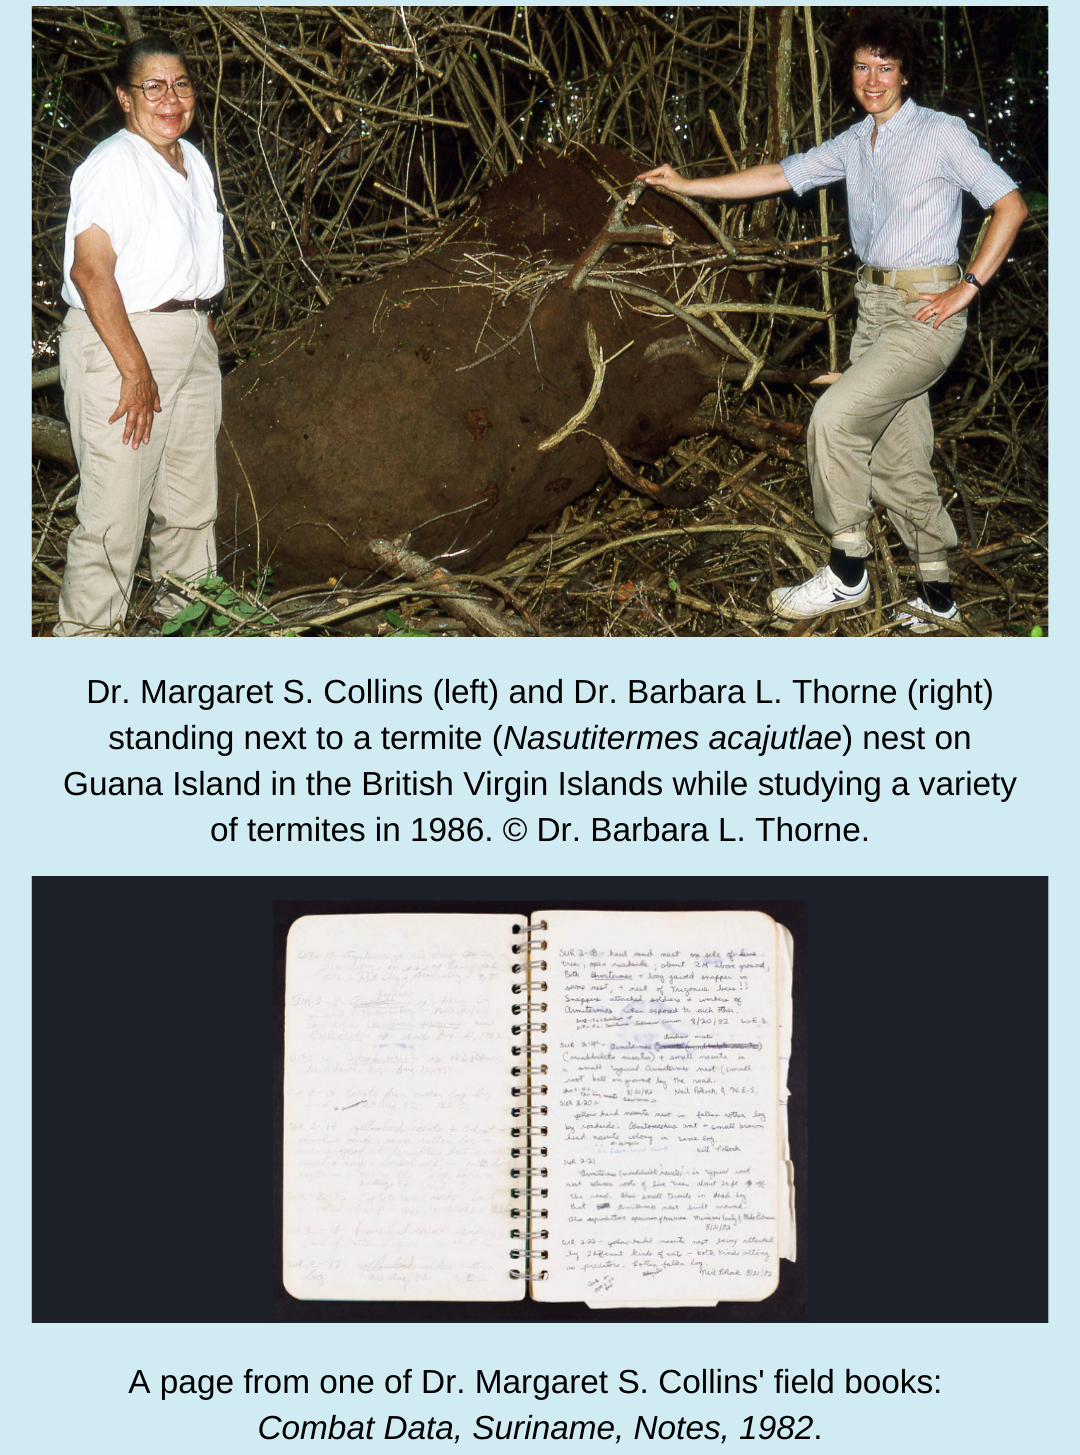 Top: Two scientists researching termites in the British Virgin Islands stand together with a huge termite nest in between them. Photo taken in 1986. Bottom: An open spiral notebook with handwritten text in blue ink.